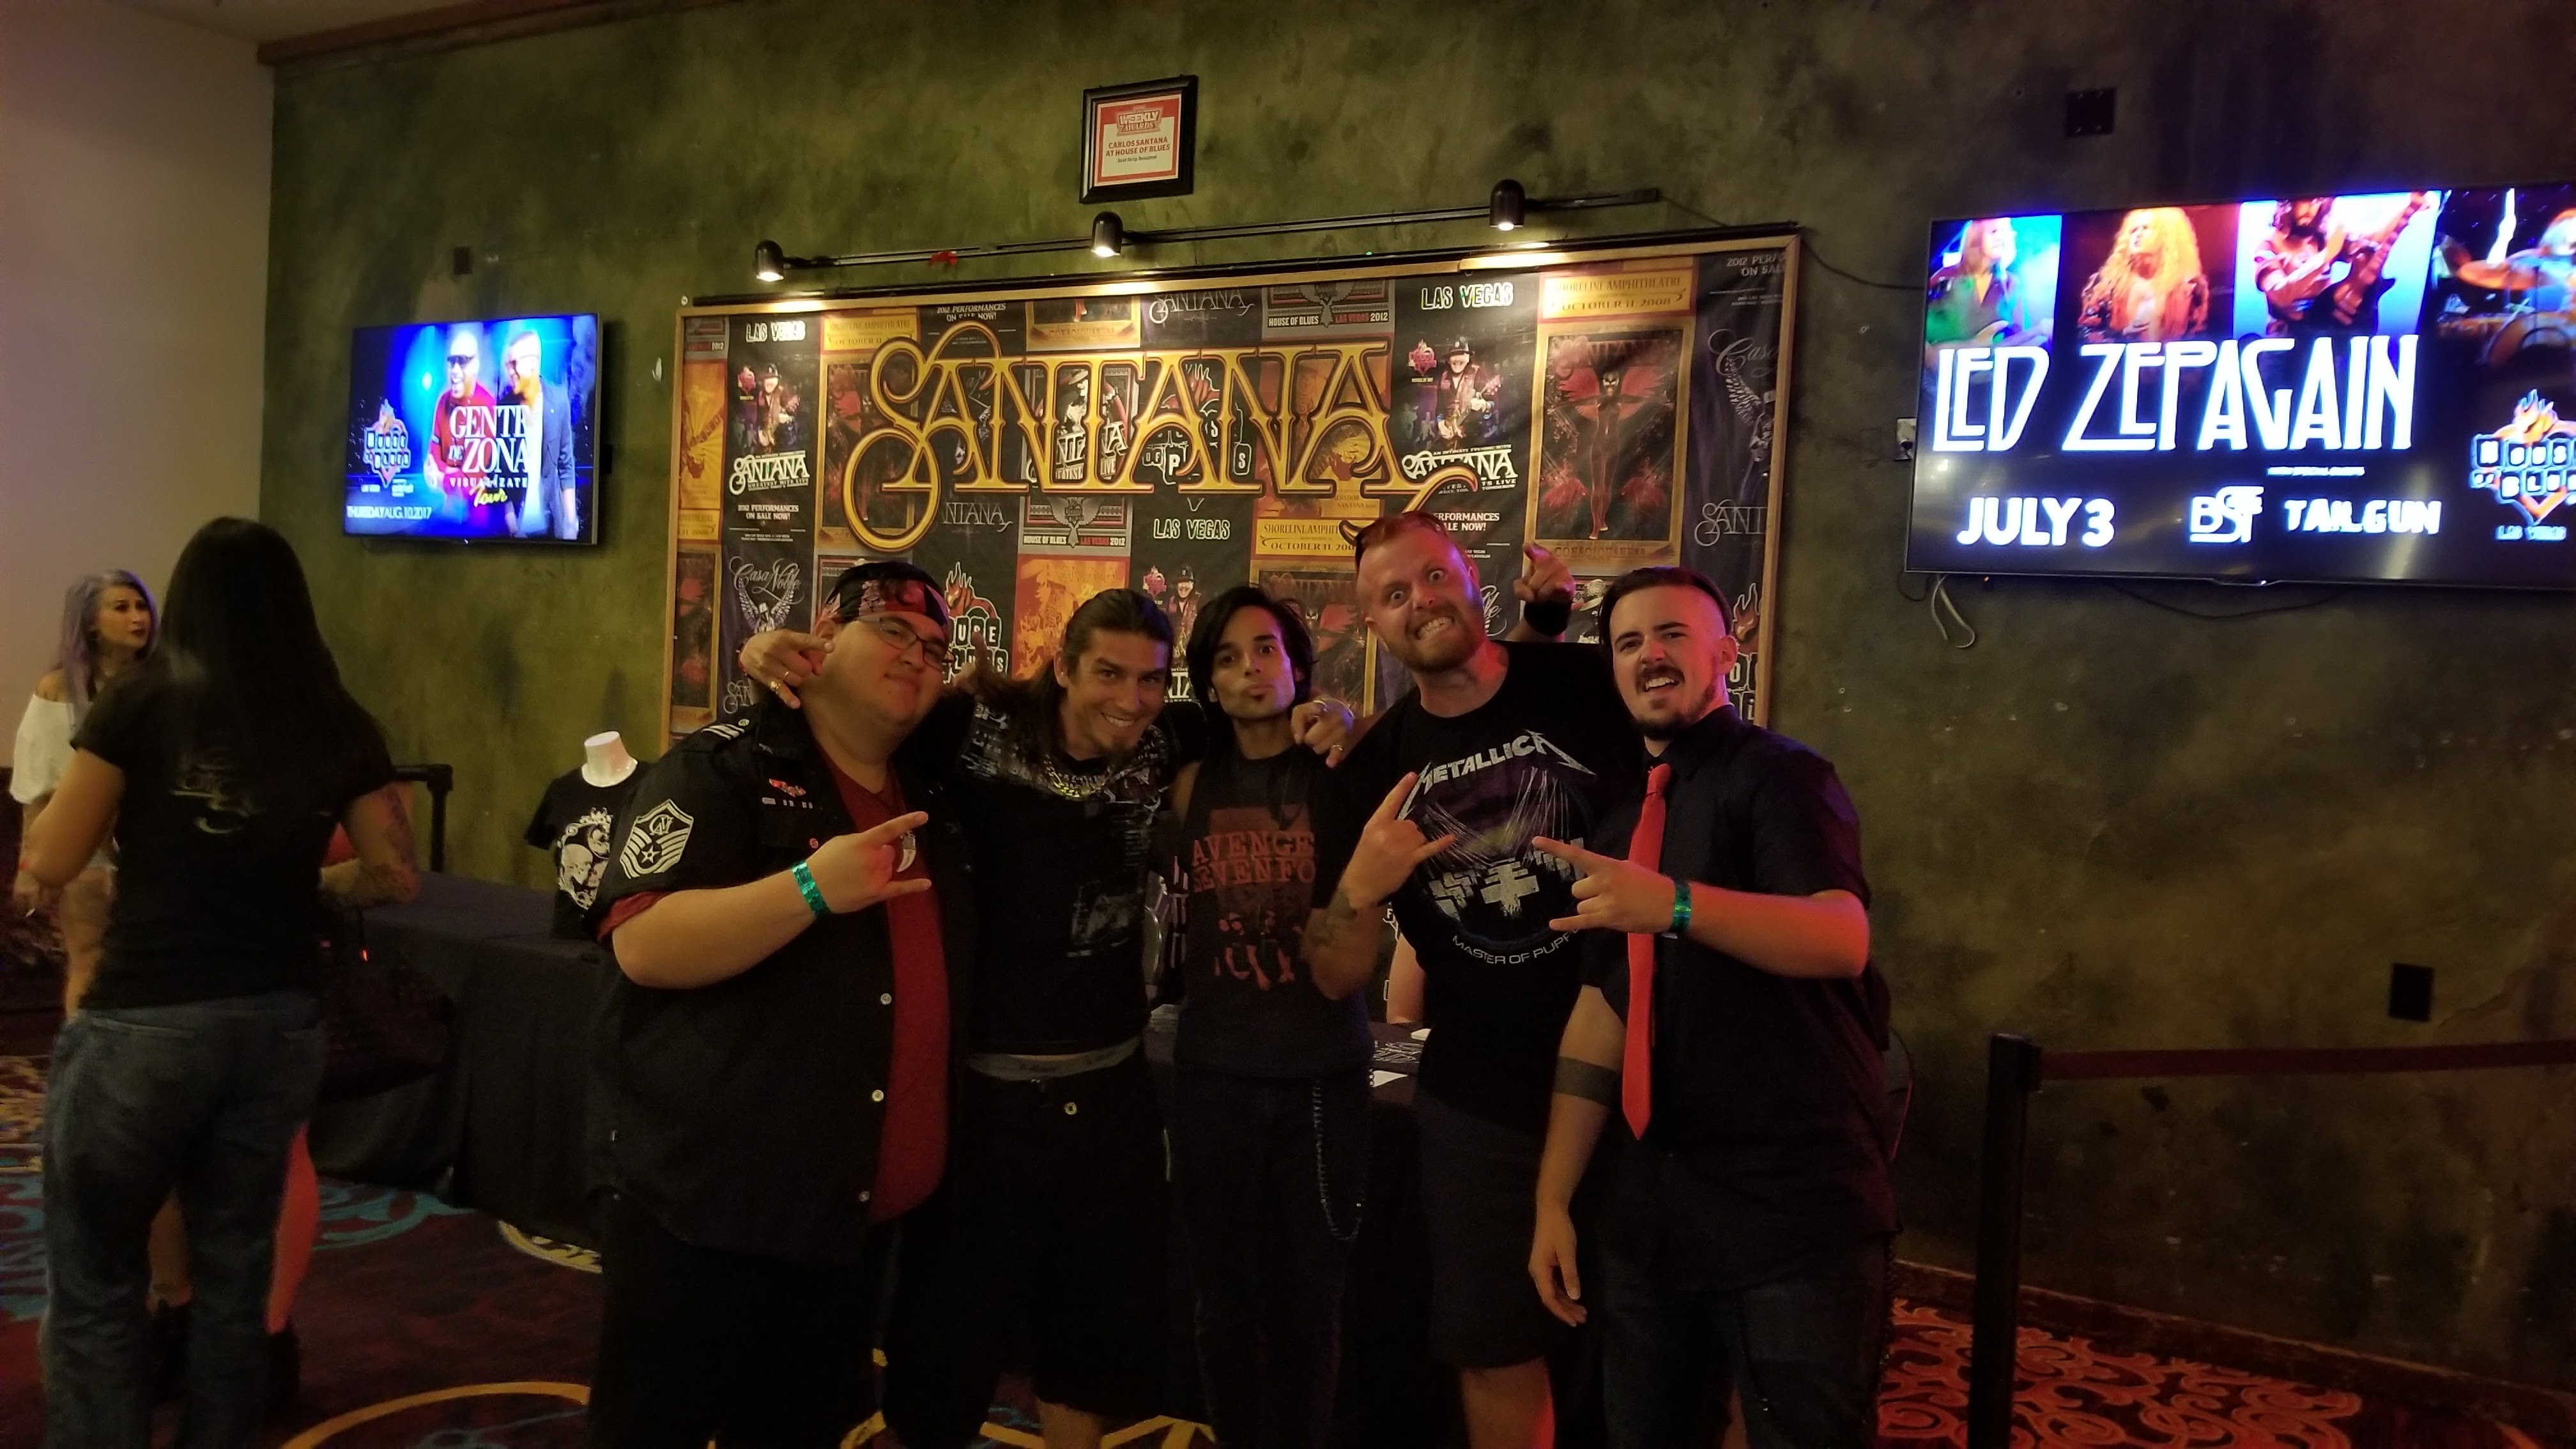 With the band after the show.